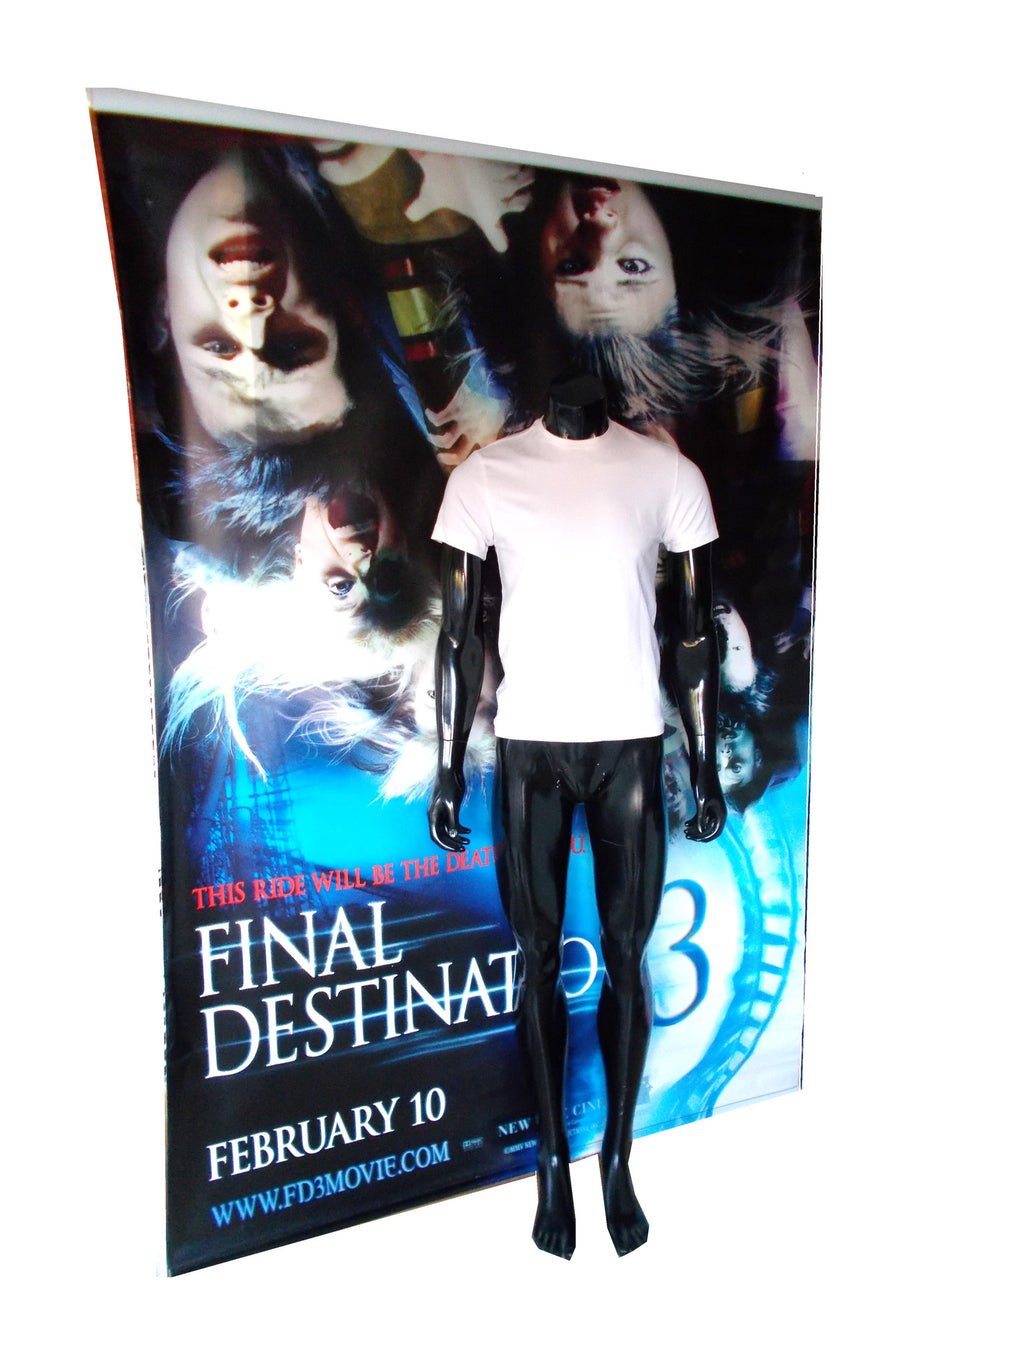 Final Destination 3 (2006) - Kevin's Shirt & Cinema Banner